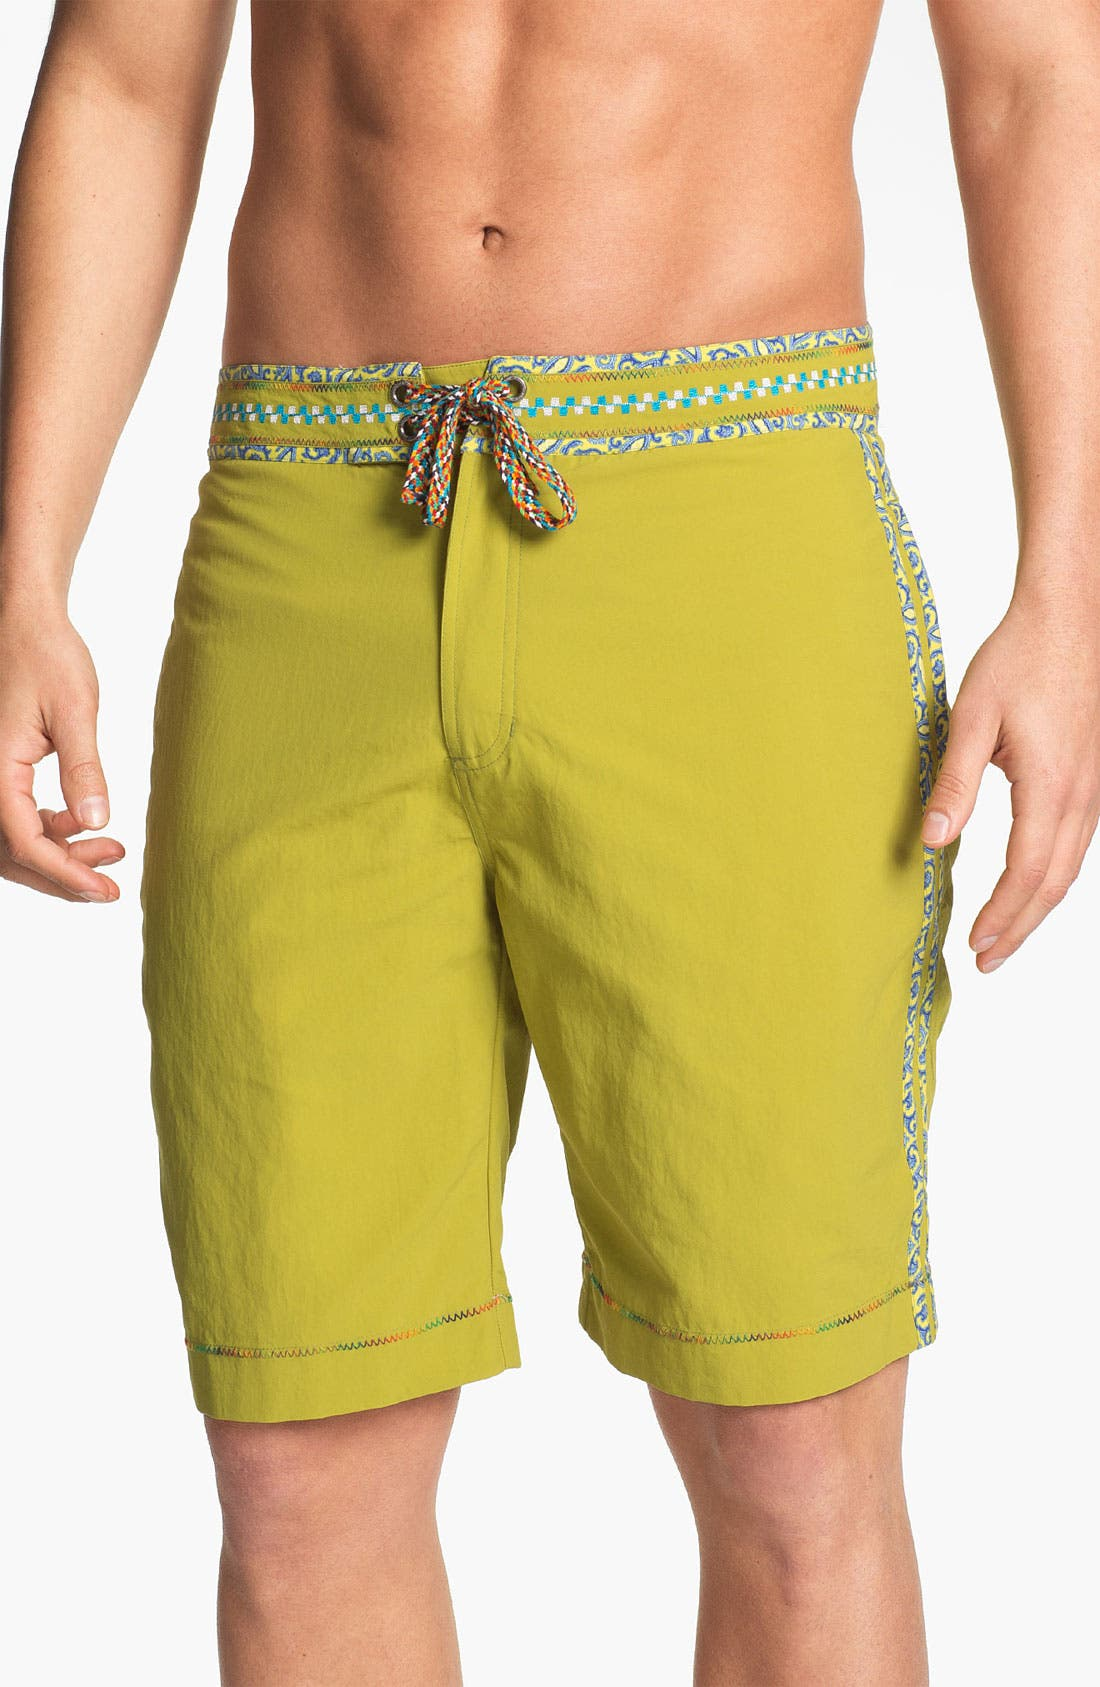 Alternate Image 1 Selected - Robert Graham 'Queequeg' Board Shorts